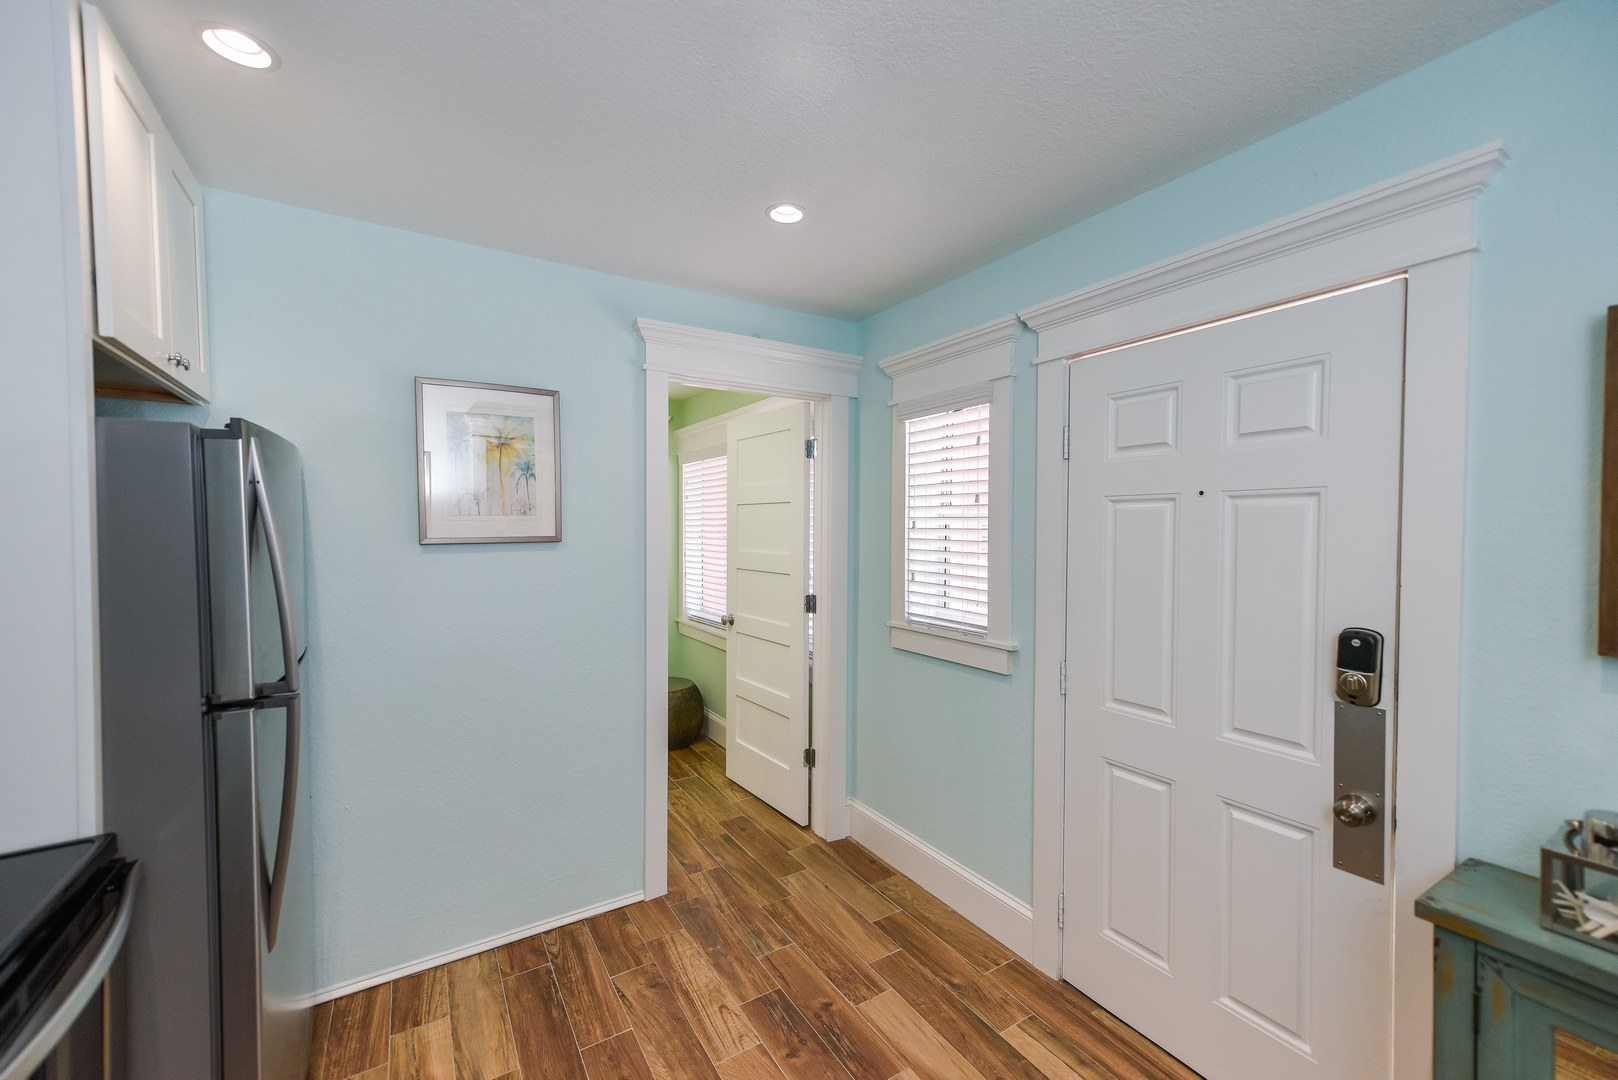 Entrance into this 1 Bedroom Suite - Bath to the right